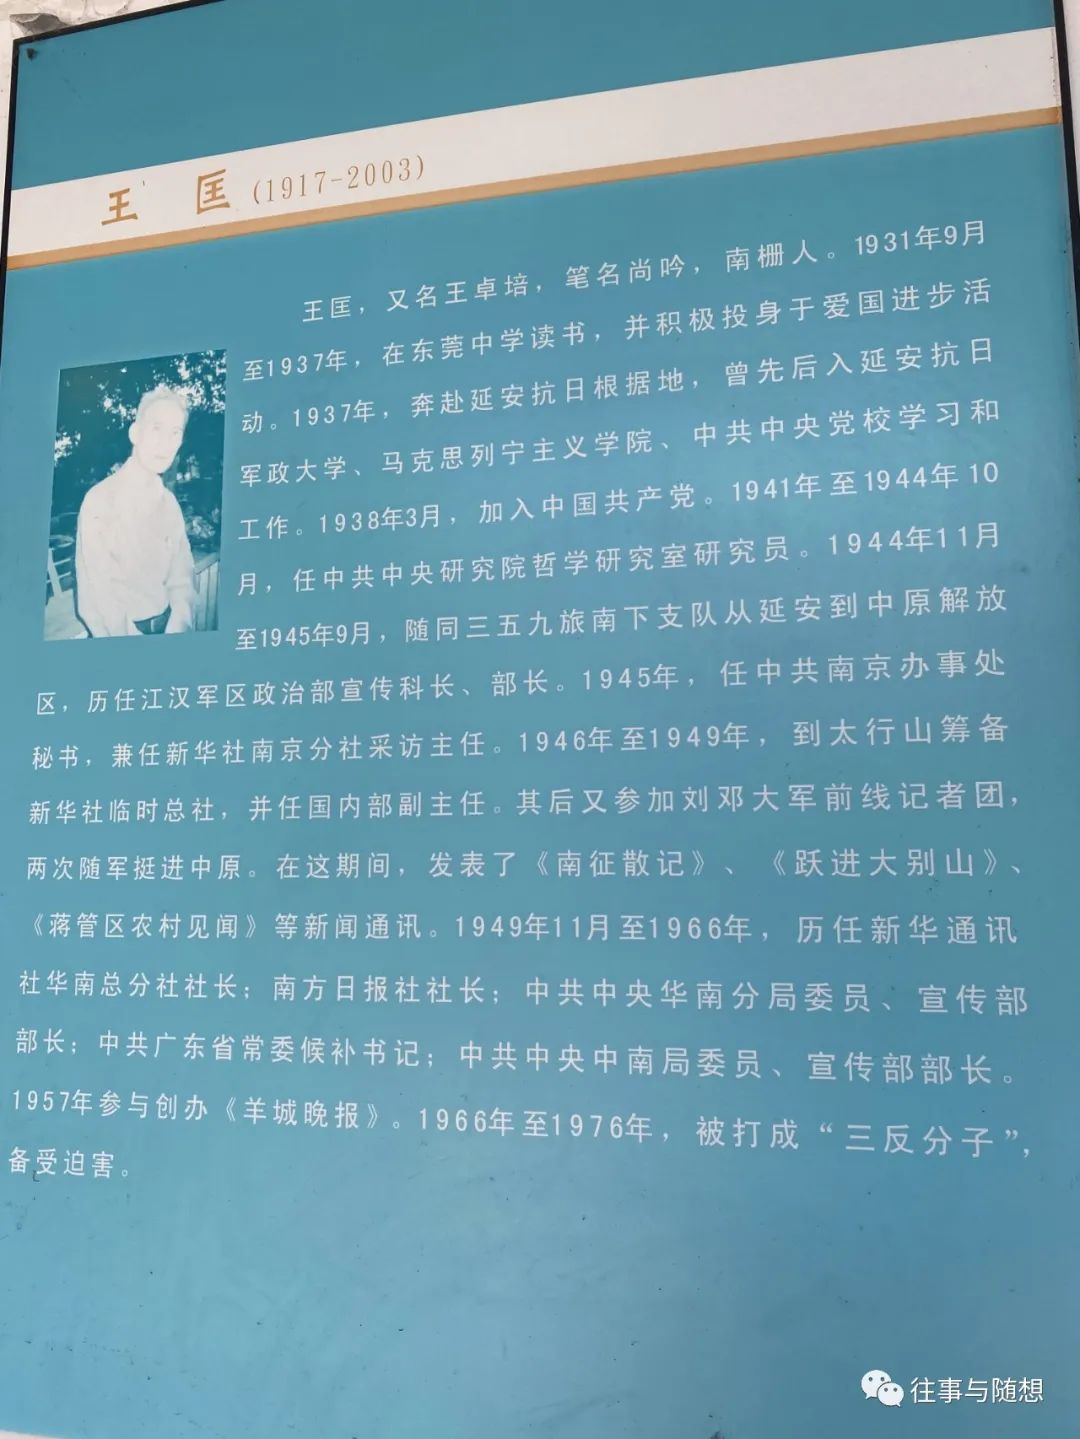 Blue poster with a photo of an elderly man and a lengthy biographical text in Chinese, which begins: Wang Kuang 1917 to 2003